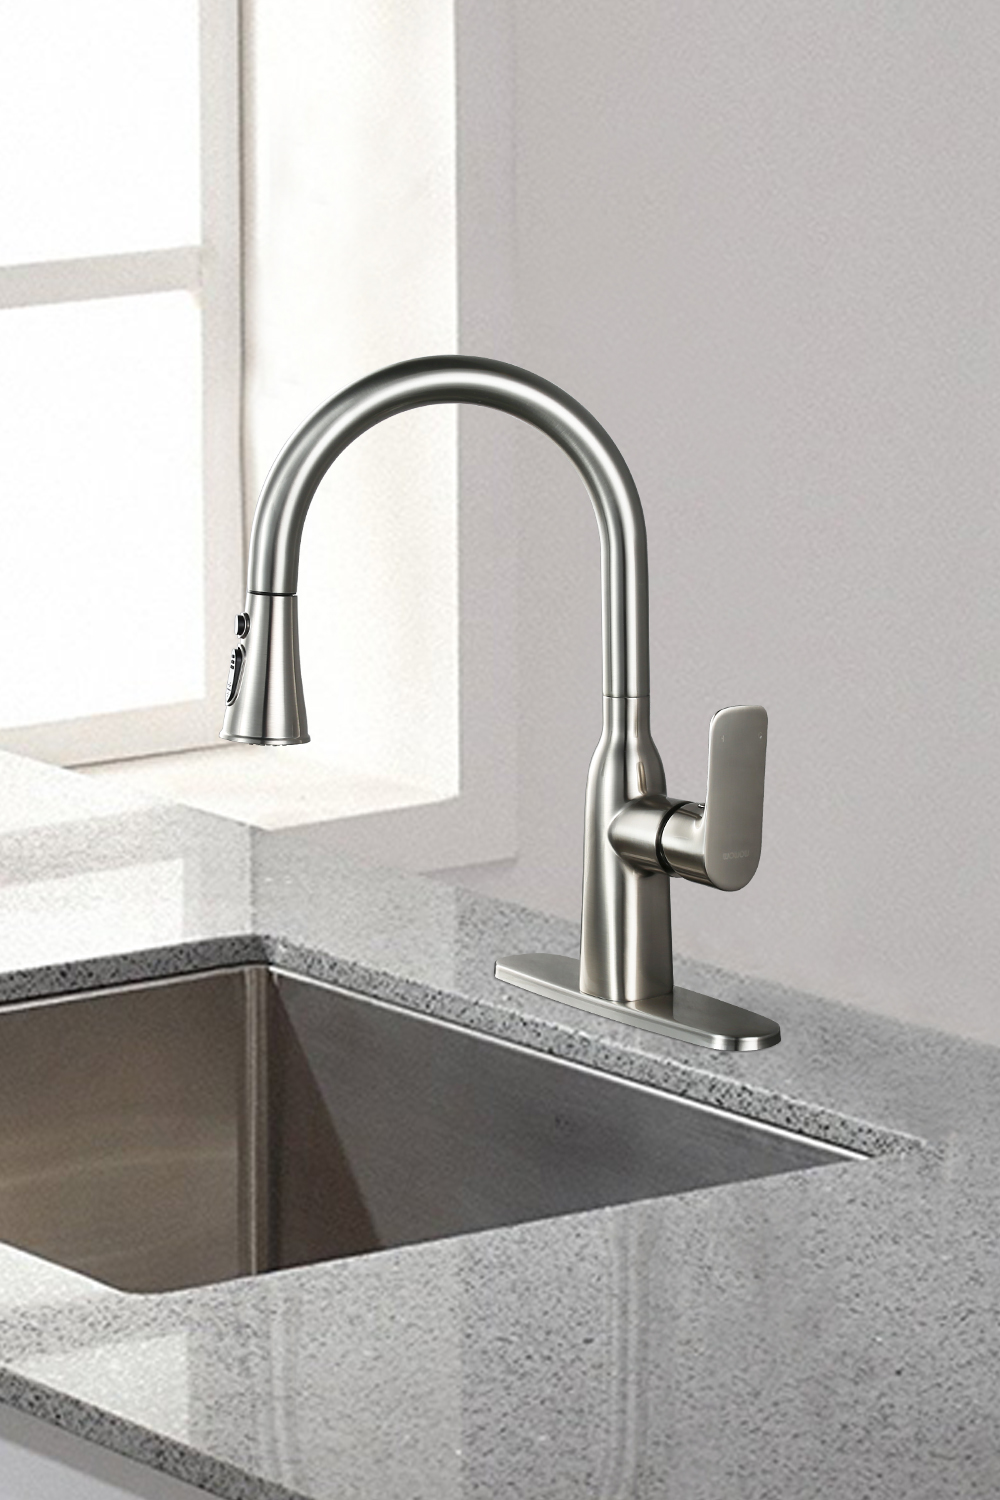 The new national standard for faucets is introduced